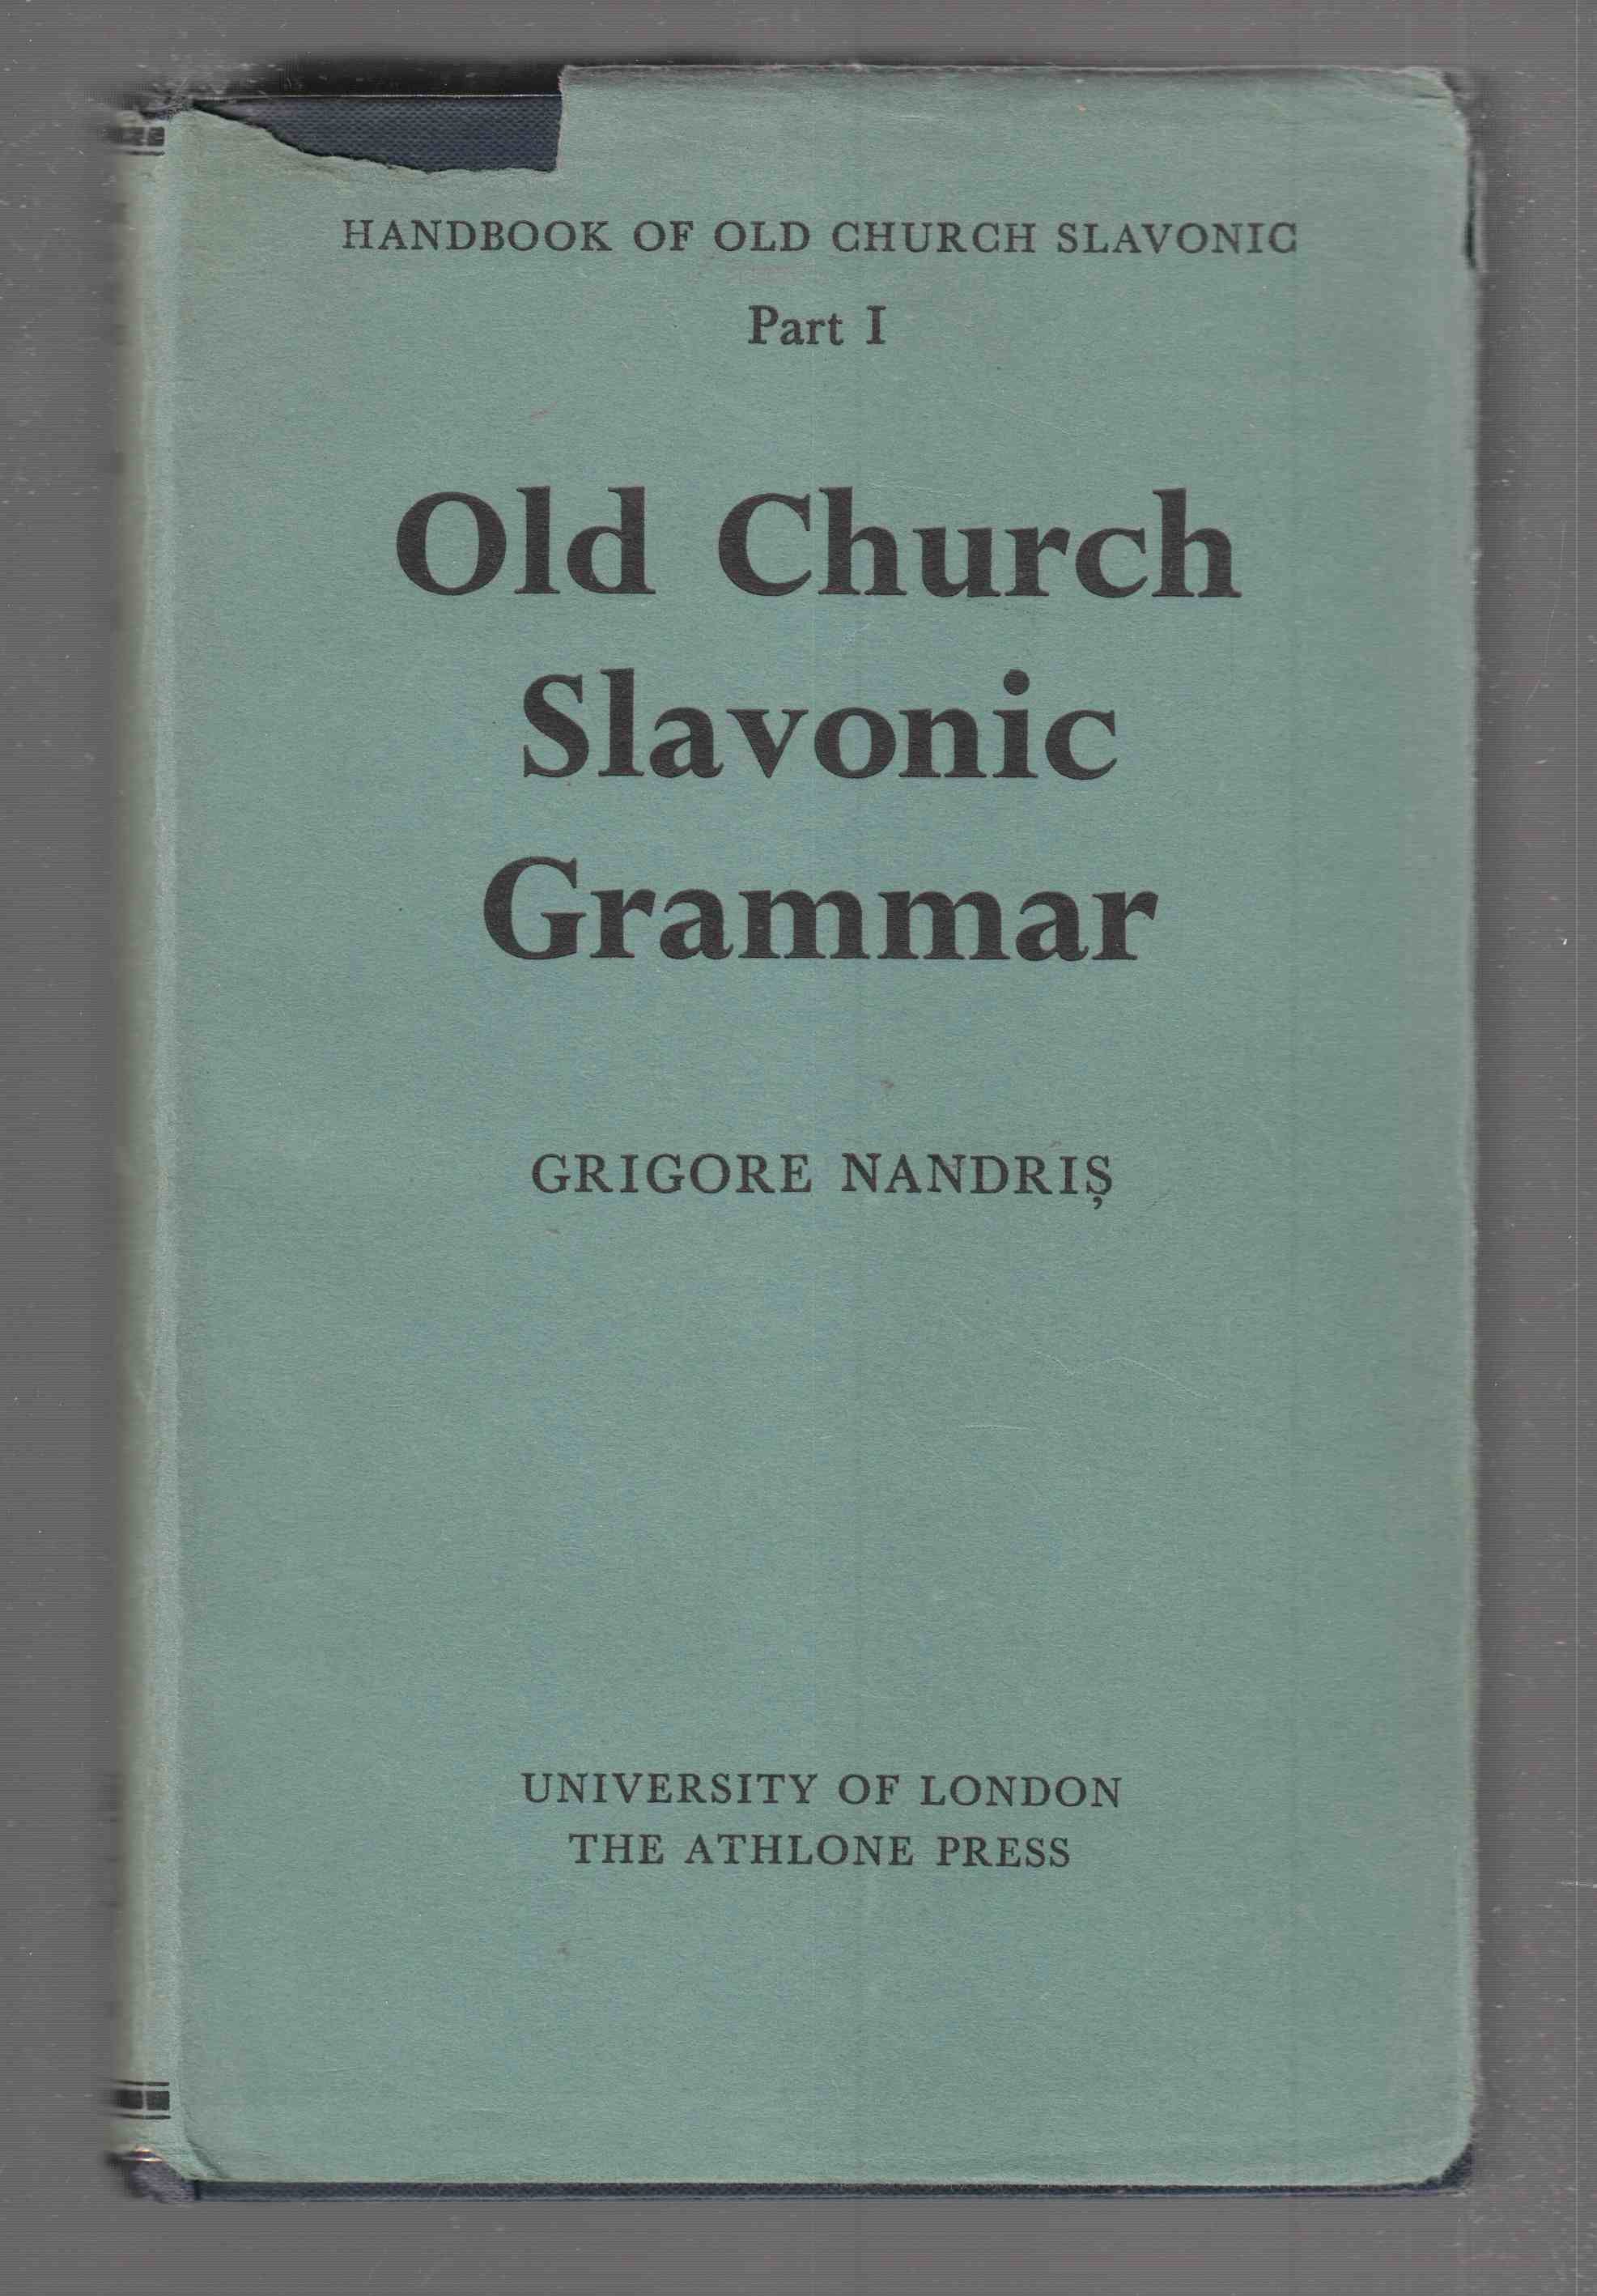 Image for Old Church Slavonic Grammar Handbook of Old Church Slavonic Part 1